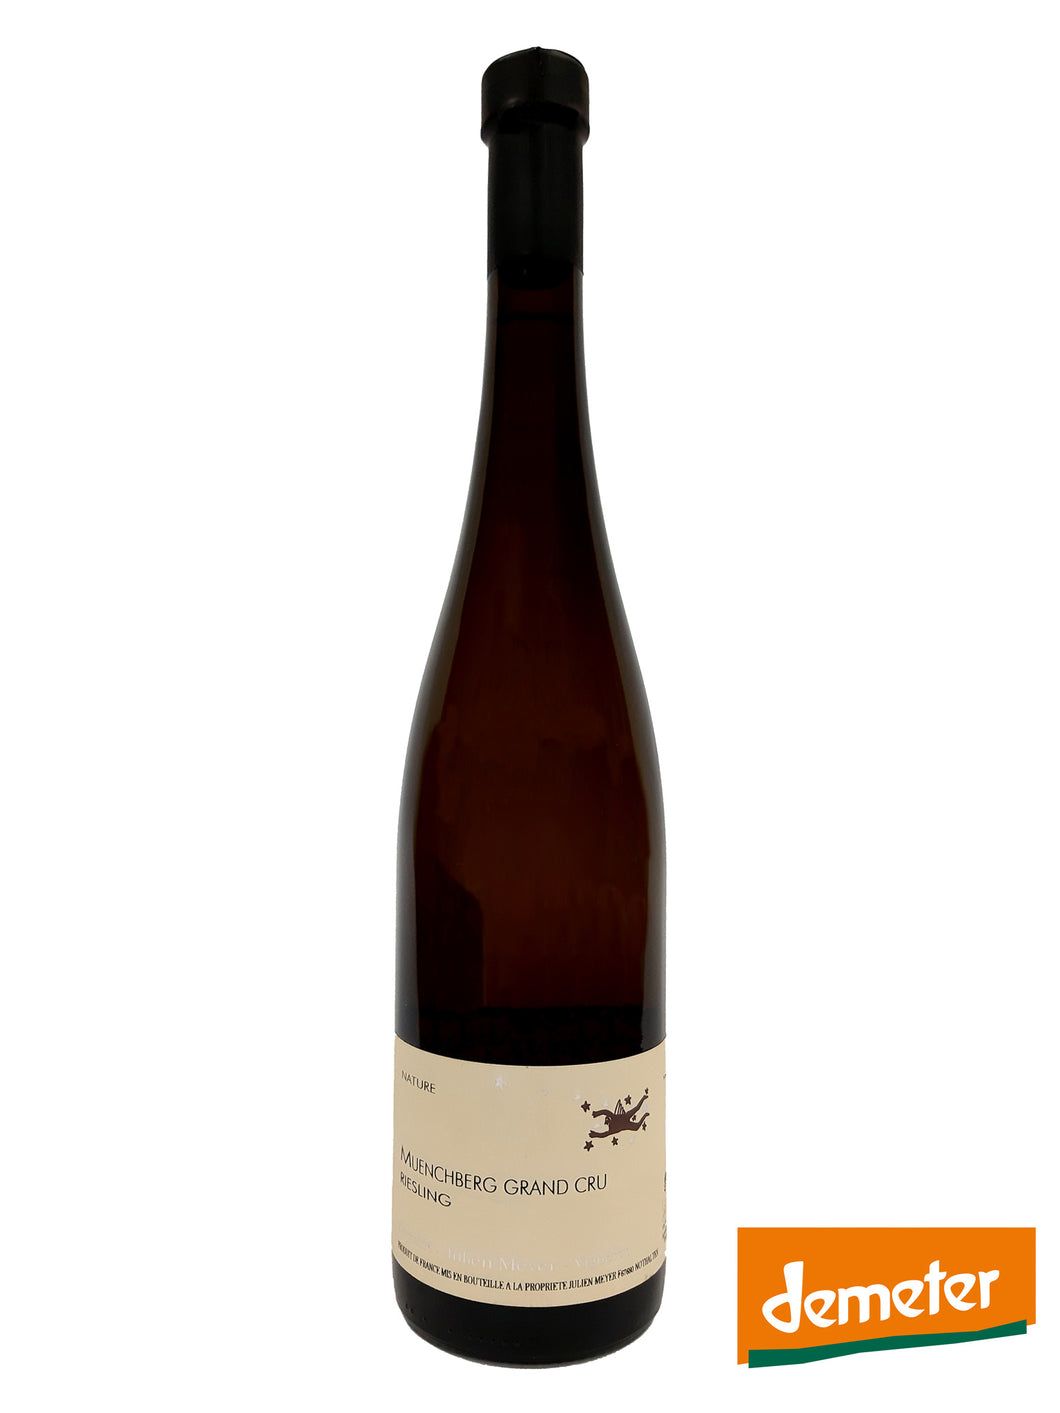 Julien Meyer - Münchberg Riesling Grand Cru 2018